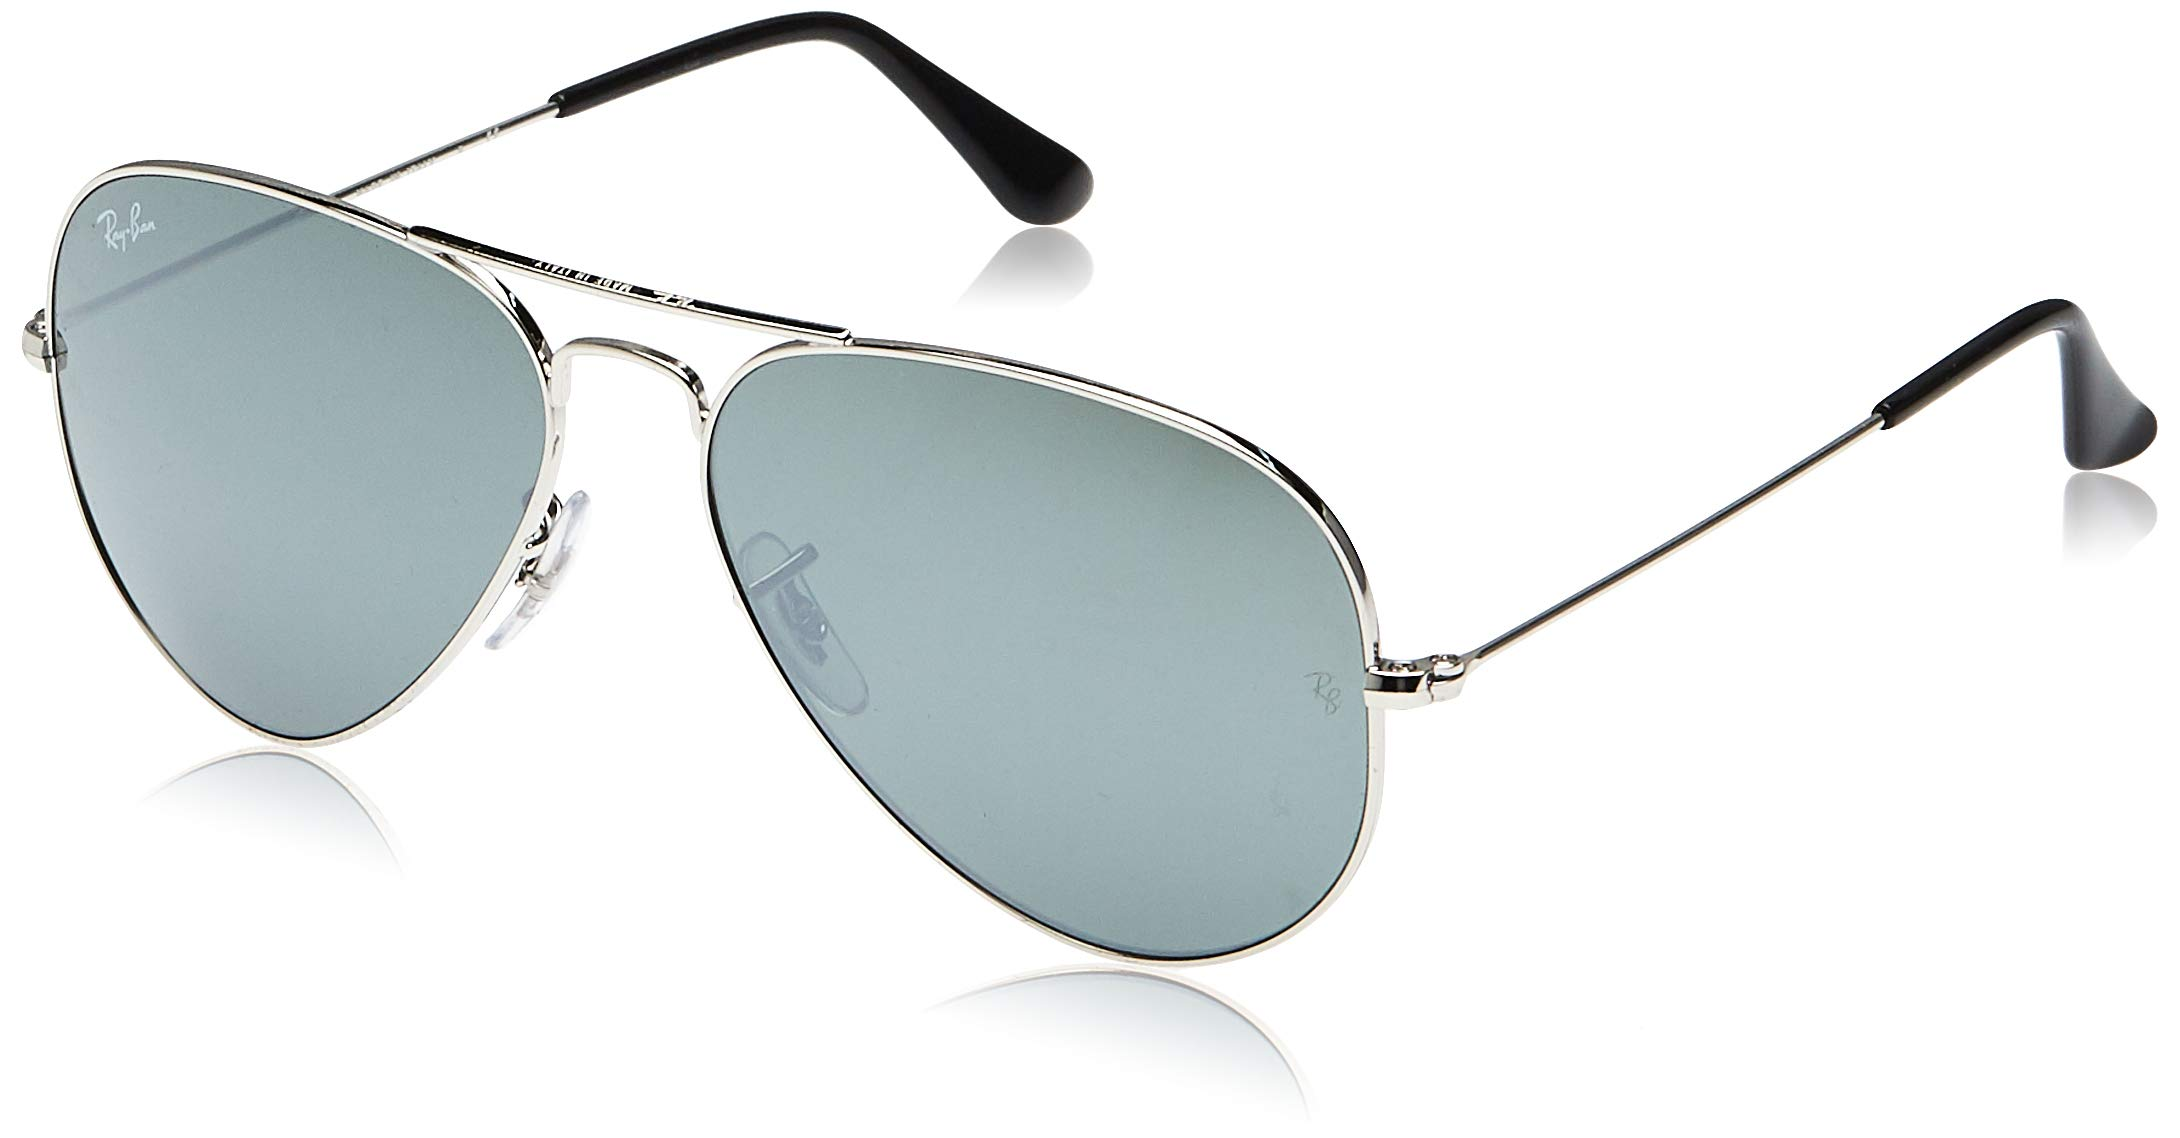 RAY-BAN RB3025 Aviator Large Metal Sunglasses, Silver/Silver Mirror, 58 mm by RAY-BAN